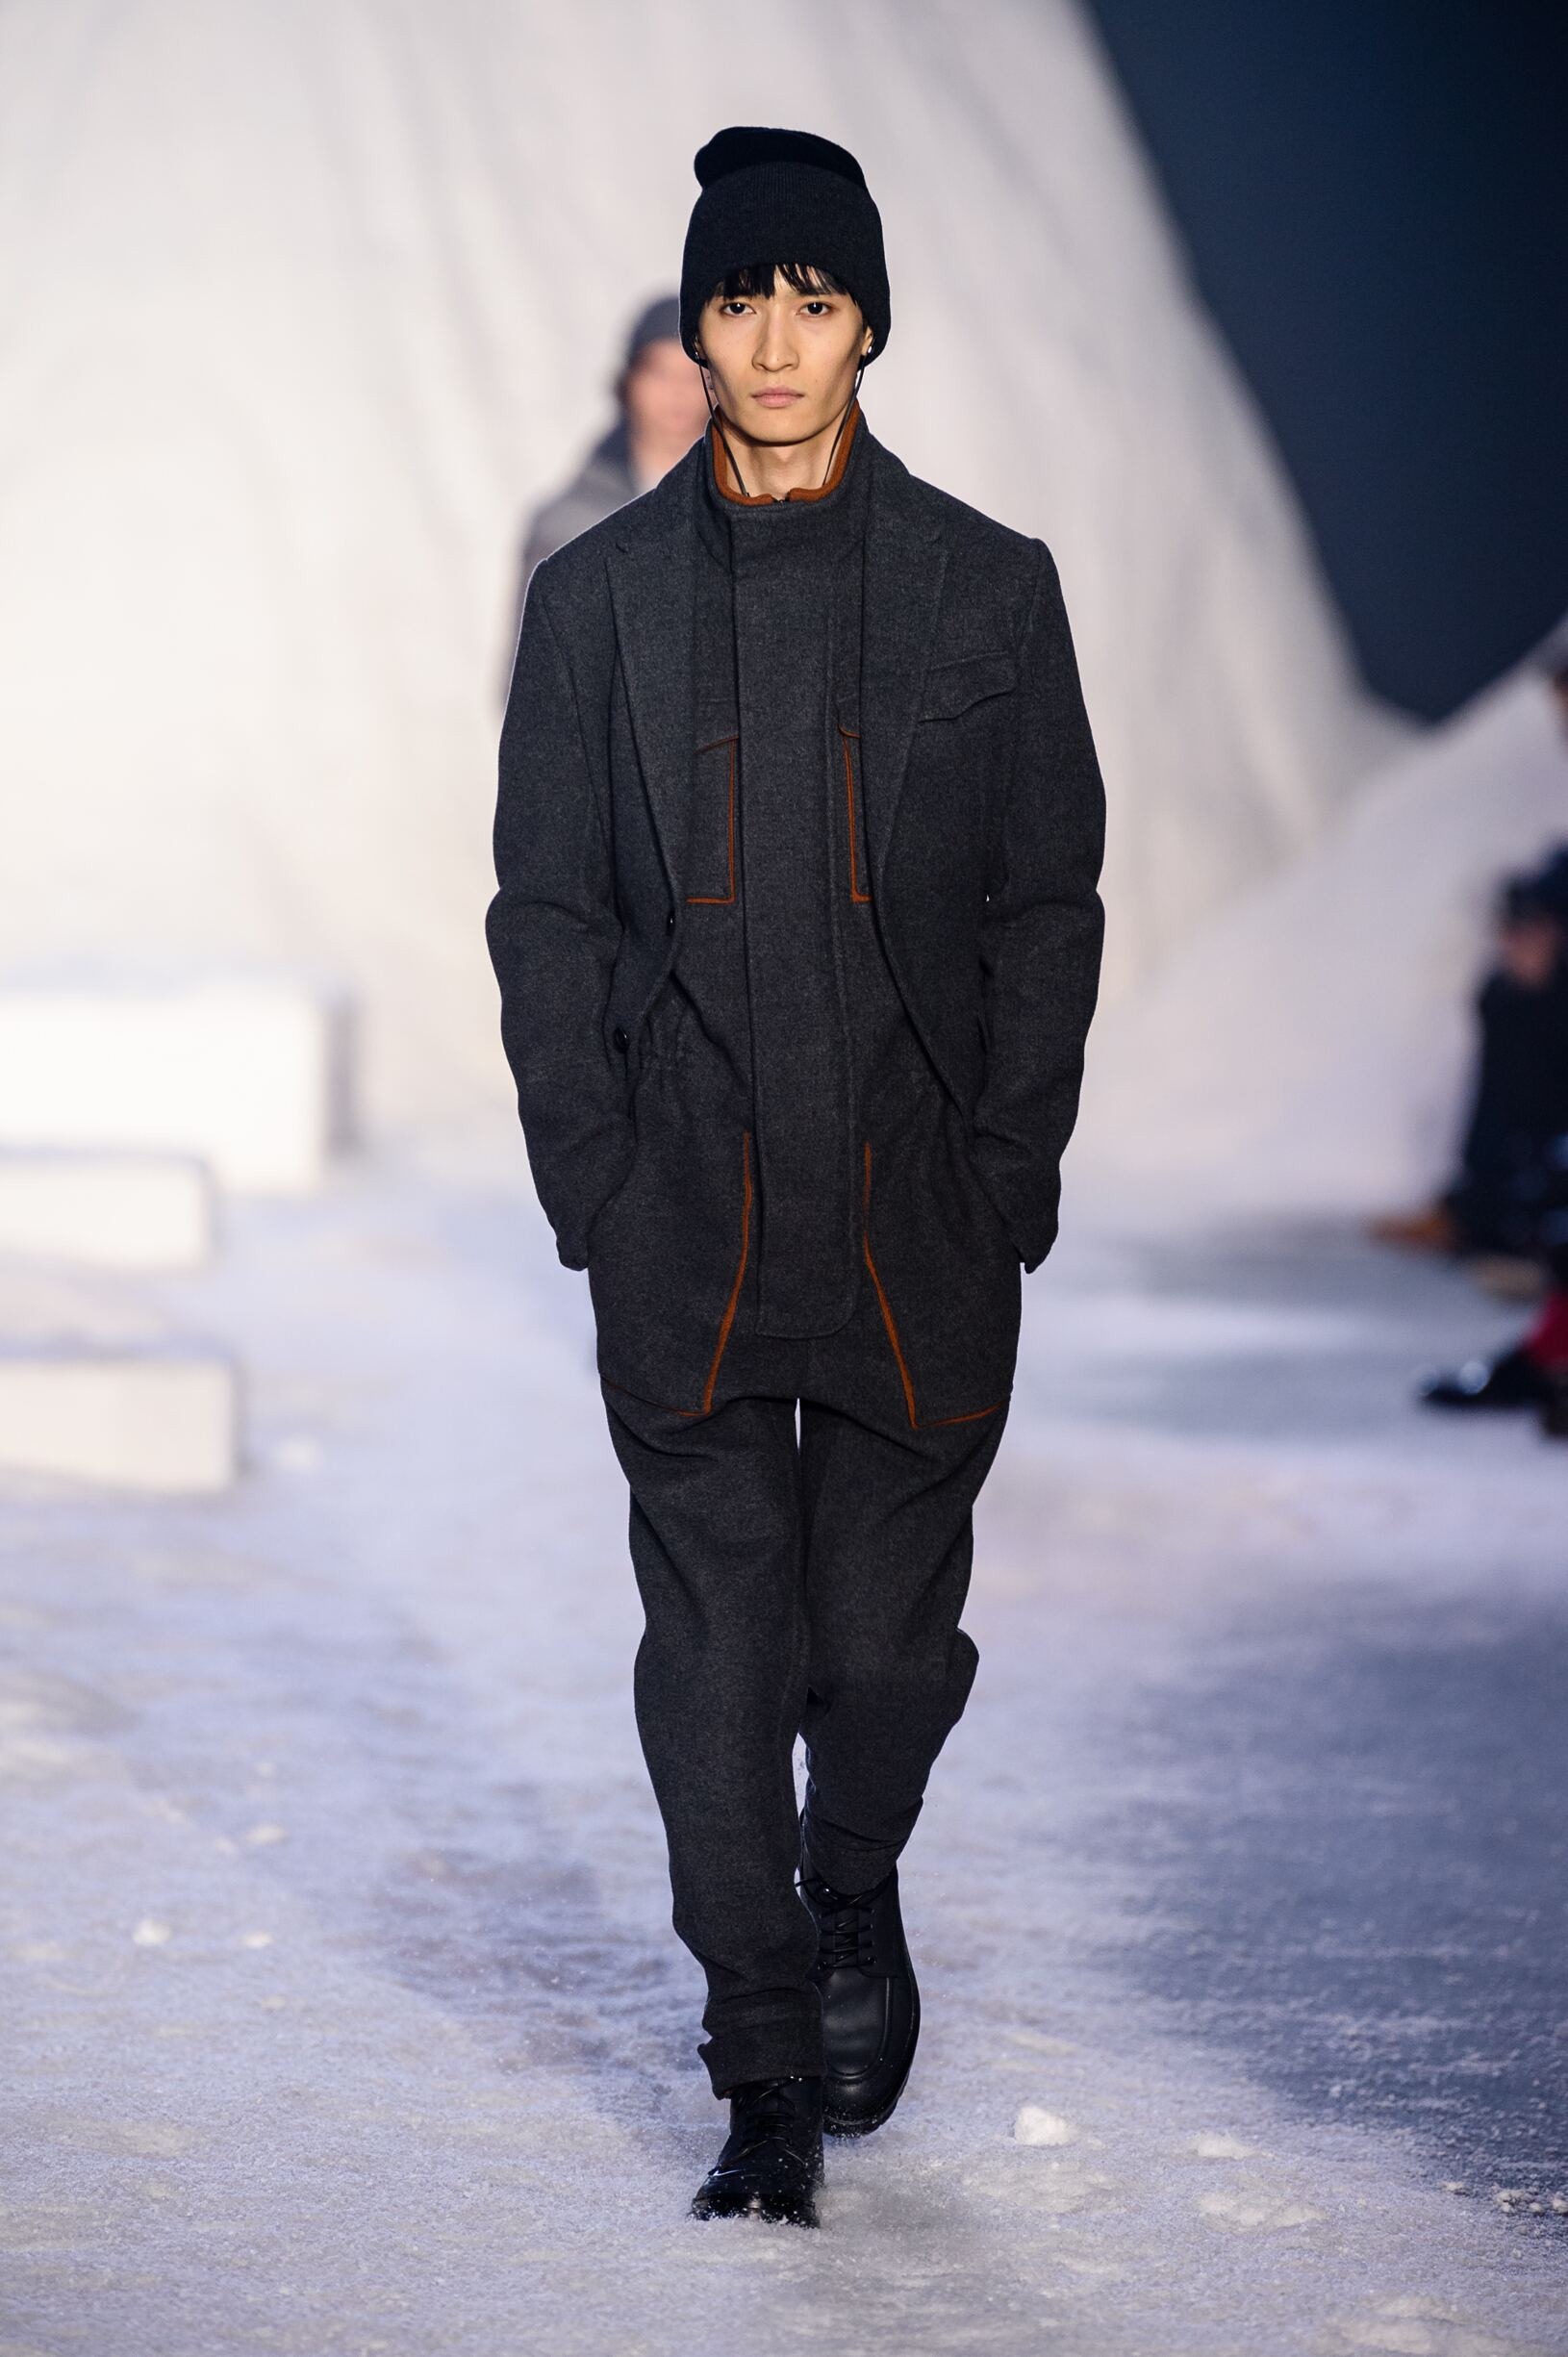 Fashion Man Model Ermenegildo Zegna Couture Catwalk